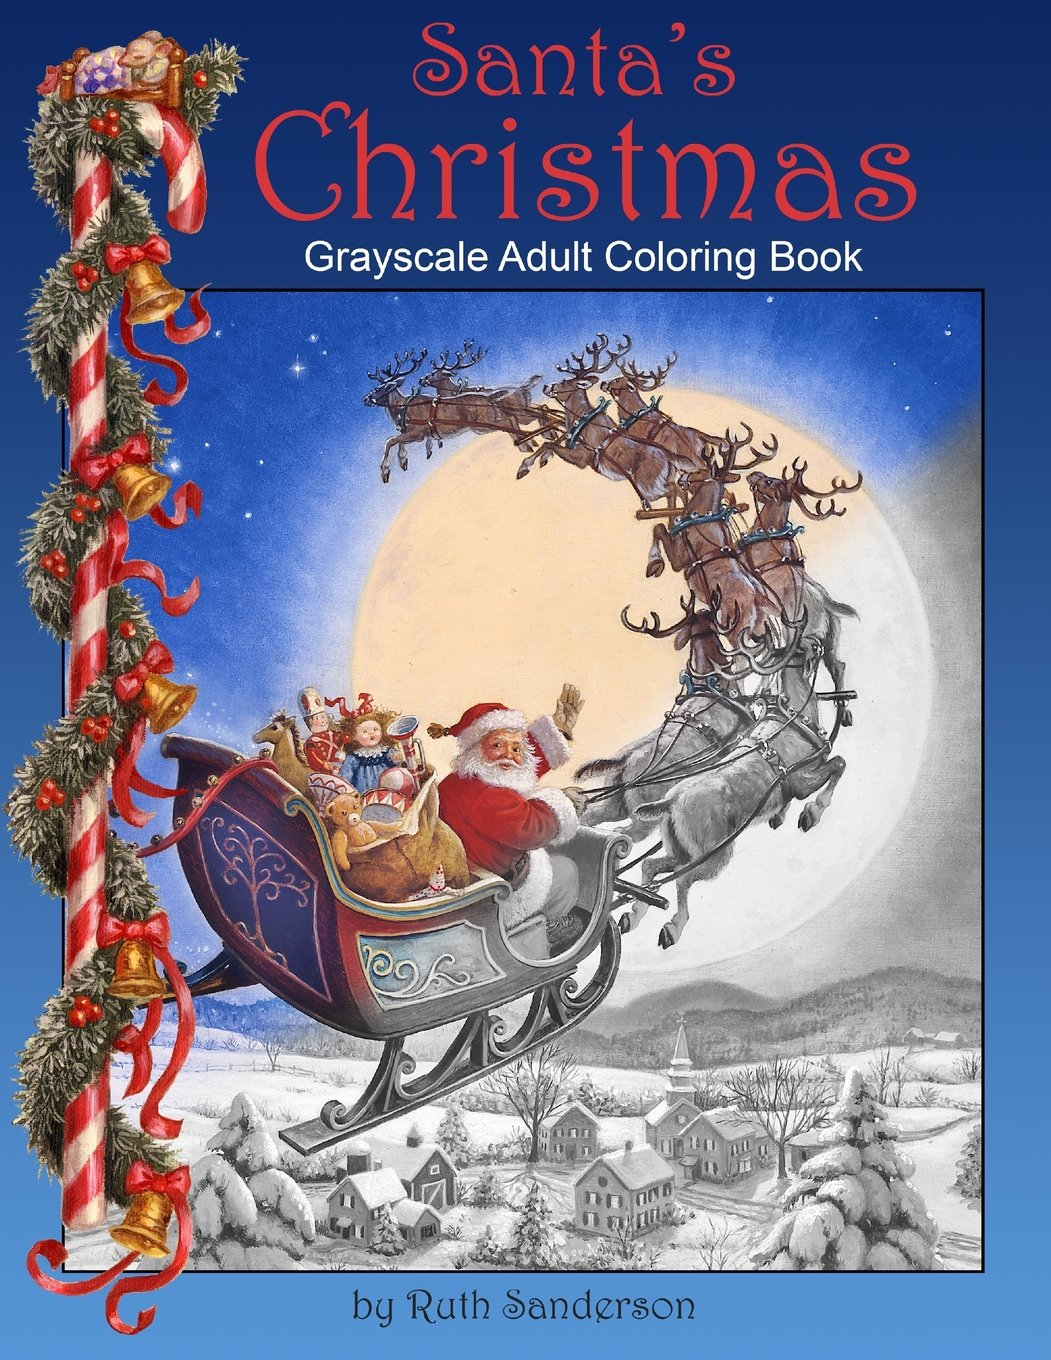 amazoncom santas christmas grayscale adult coloring book 9781974410538 ruth sanderson books